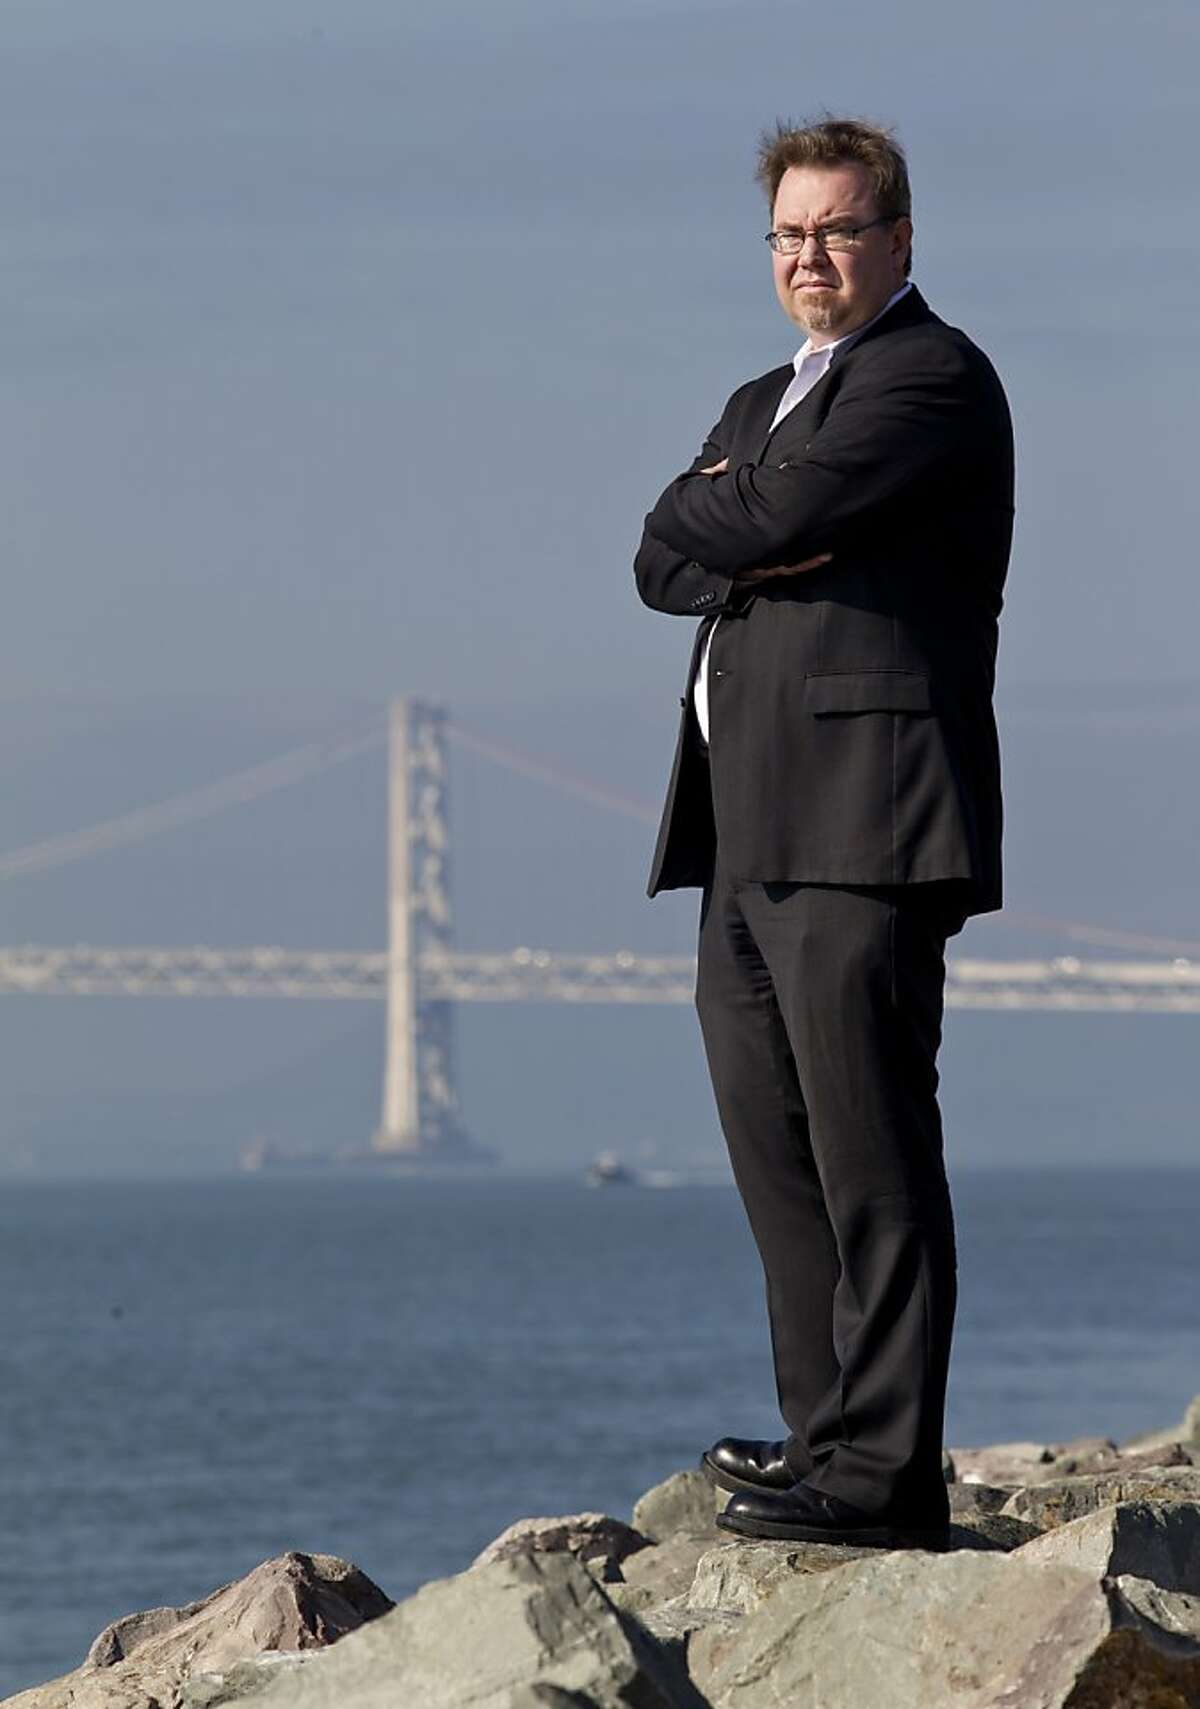 Michael Jacob, an official with the Pacific Merchant Shipping Association trade group, poses on the shore of the Oakland Ports on Friday, January 25, 2013 in Oakland, Calif.